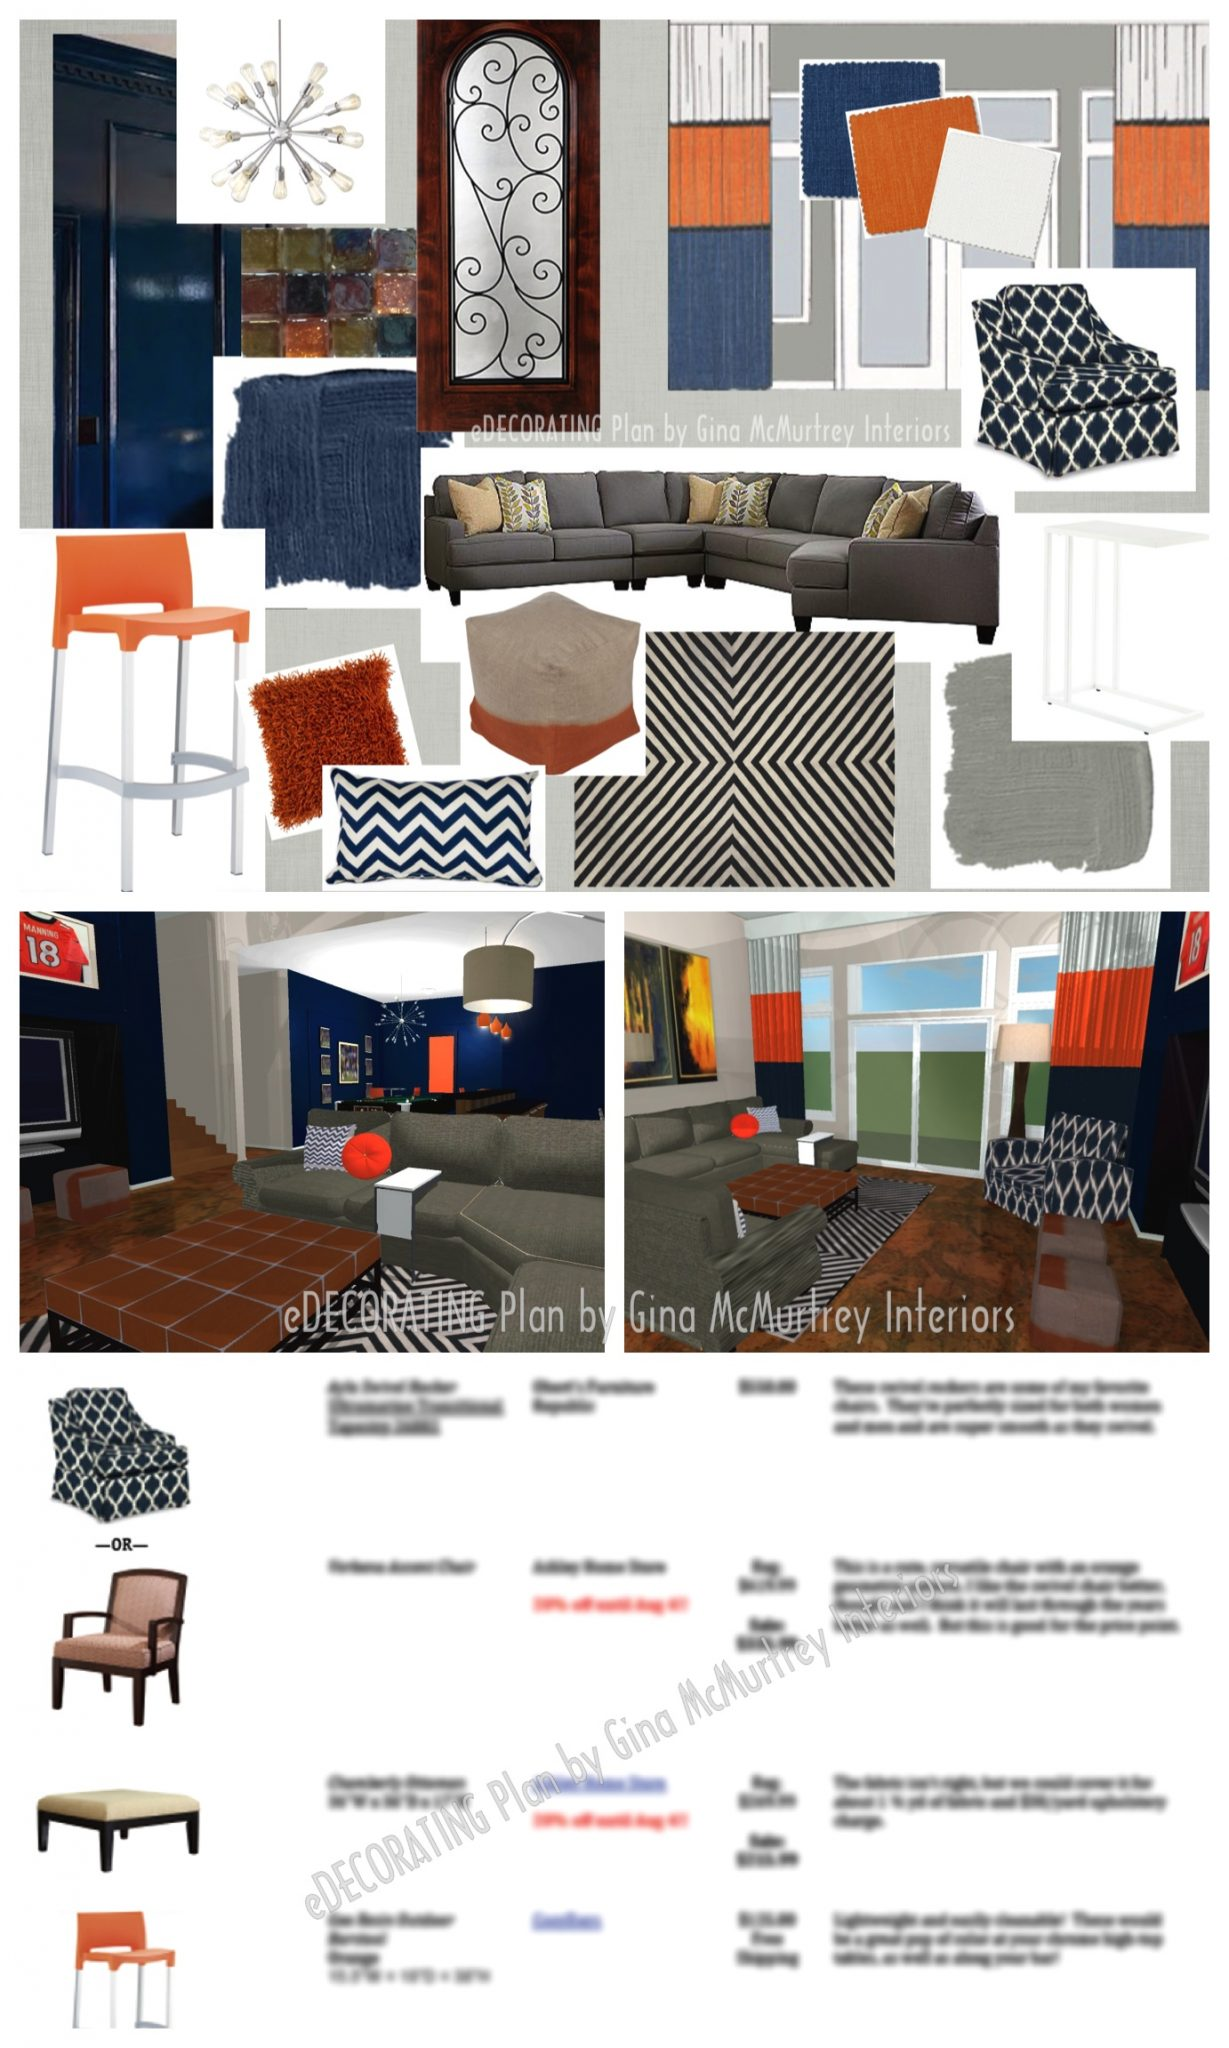 Affordable Interior Design Help For The DIYer Is Available Through EDECORATING